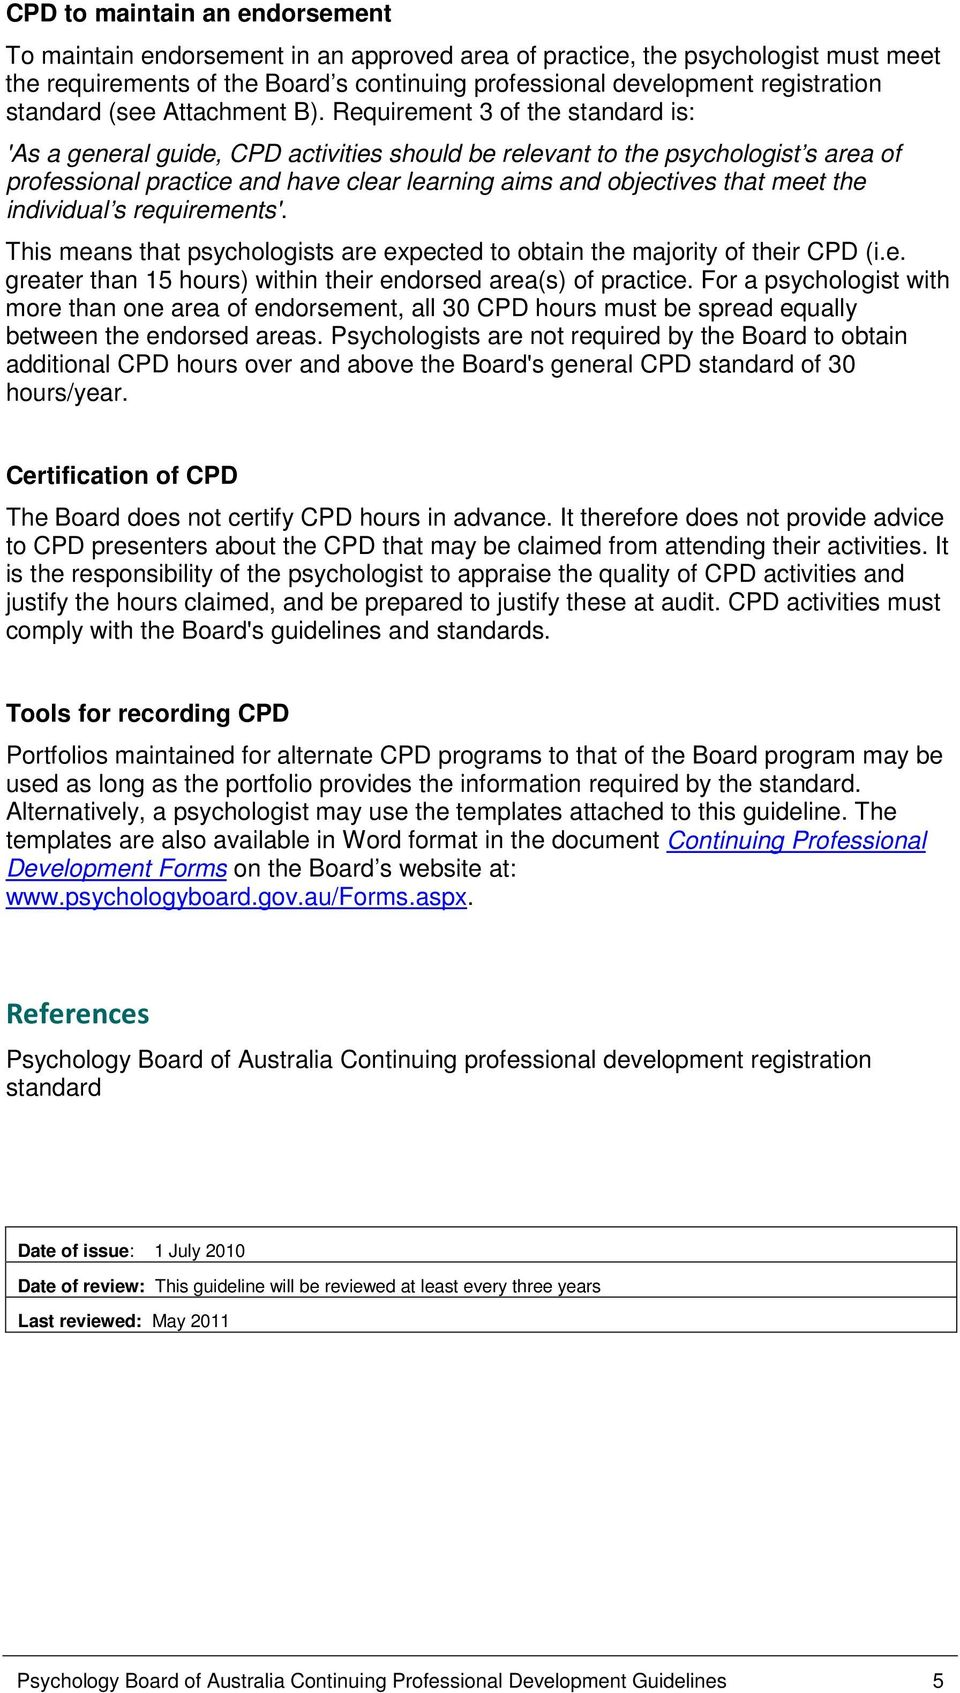 Requirement 3 of the standard is: 'As a general guide, CPD activities should be relevant to the psychologist s area of professional practice and have clear learning aims and objectives that meet the